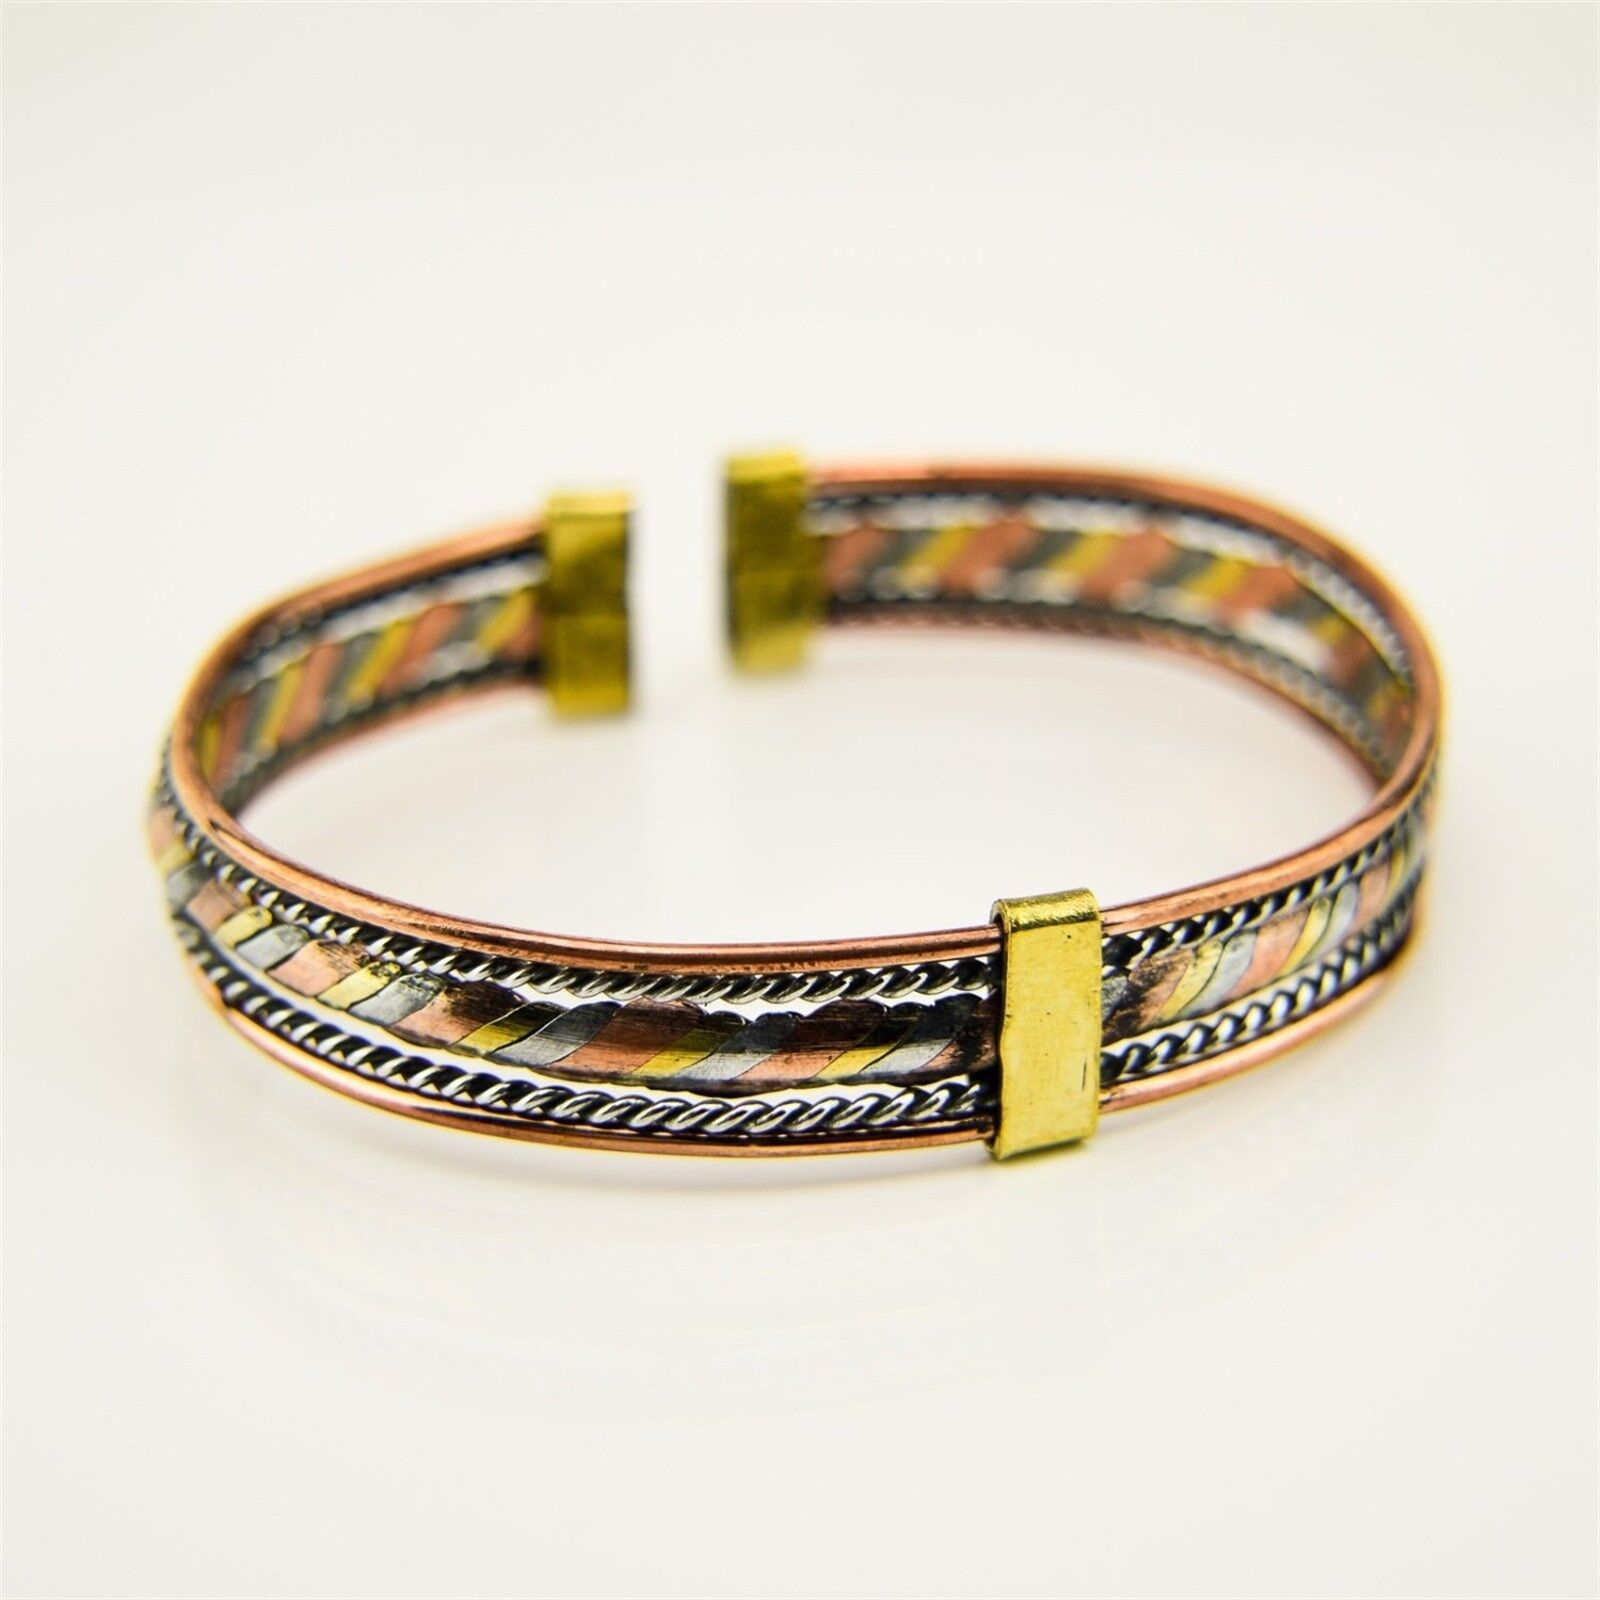 WEST AFRICA MALI African Ethnic Jewelry BRASS AND COPPER TWISTED BRACELET BB